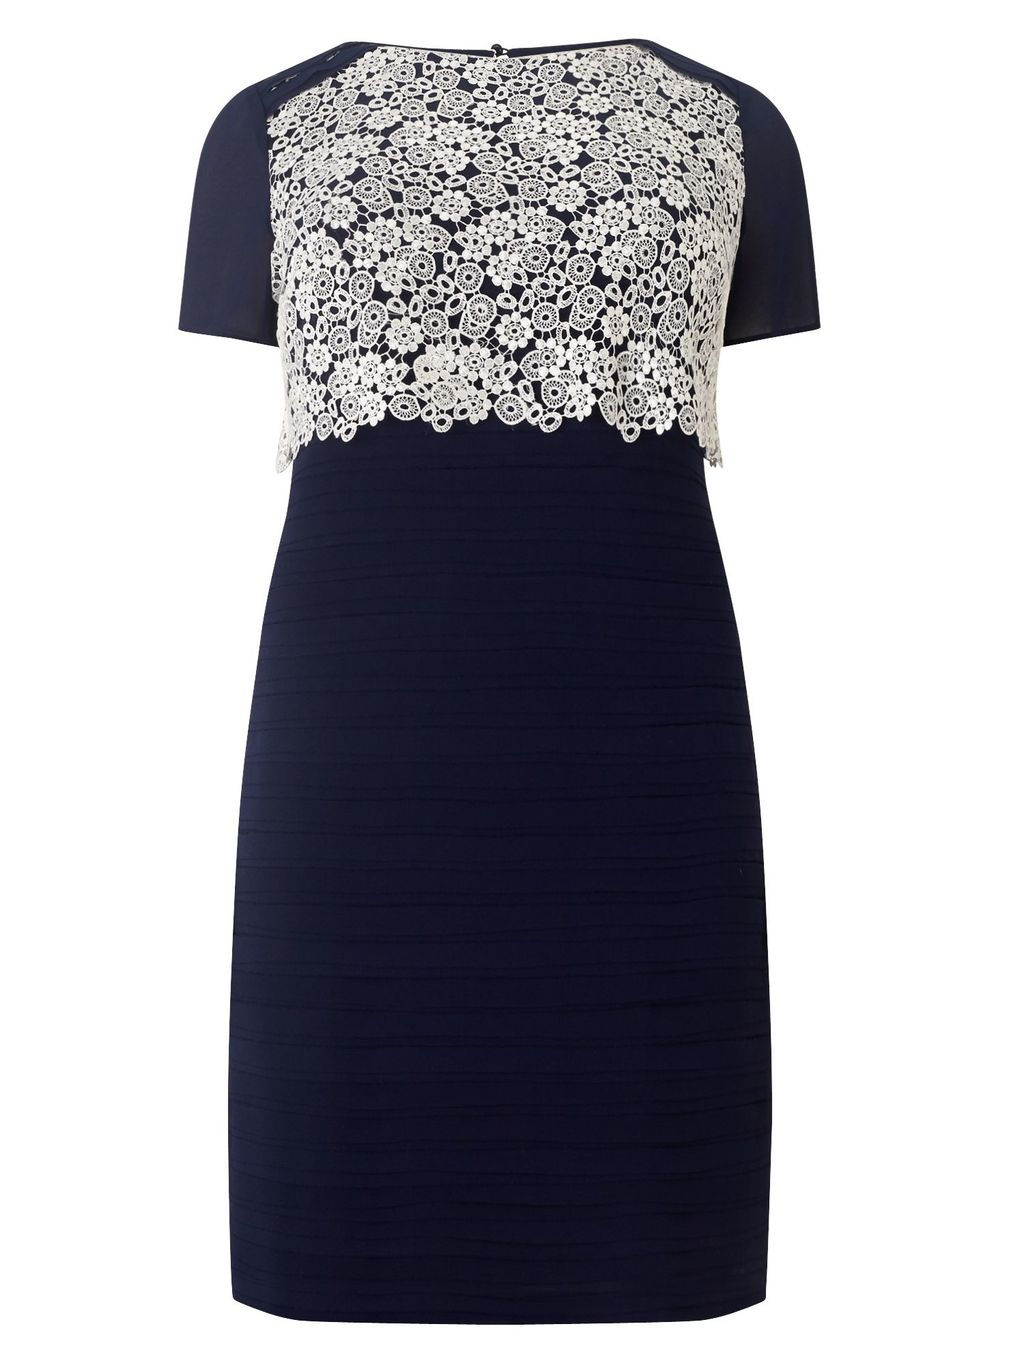 Lucia Dress, Navy - style: shift; length: mid thigh; fit: tailored/fitted; pattern: plain; bust detail: added detail/embellishment at bust; shoulder detail: contrast pattern/fabric at shoulder; secondary colour: white; predominant colour: navy; fibres: polyester/polyamide - 100%; occasions: occasion; neckline: crew; sleeve length: short sleeve; sleeve style: standard; pattern type: fabric; texture group: other - light to midweight; embellishment: lace; season: s/s 2016